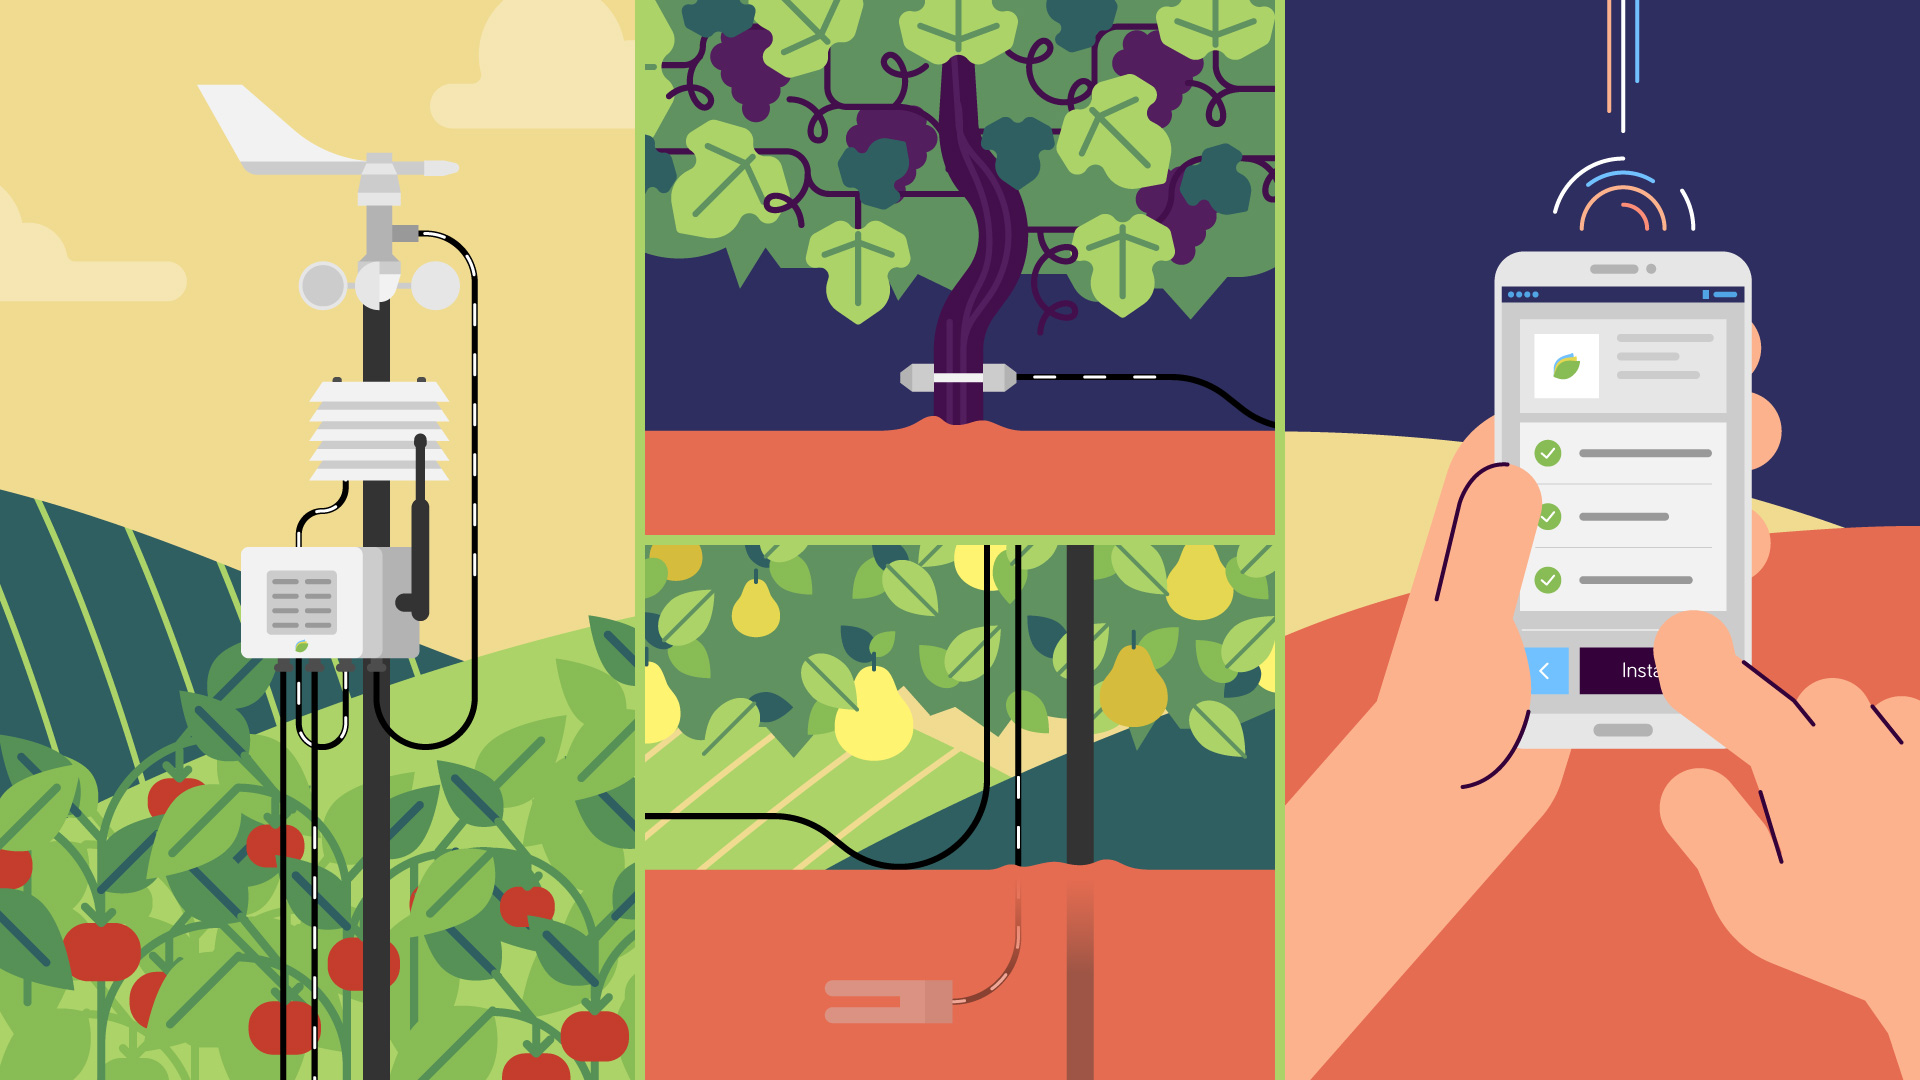 Illustration of a split screen with a crop monitoring device, different plants and a phone